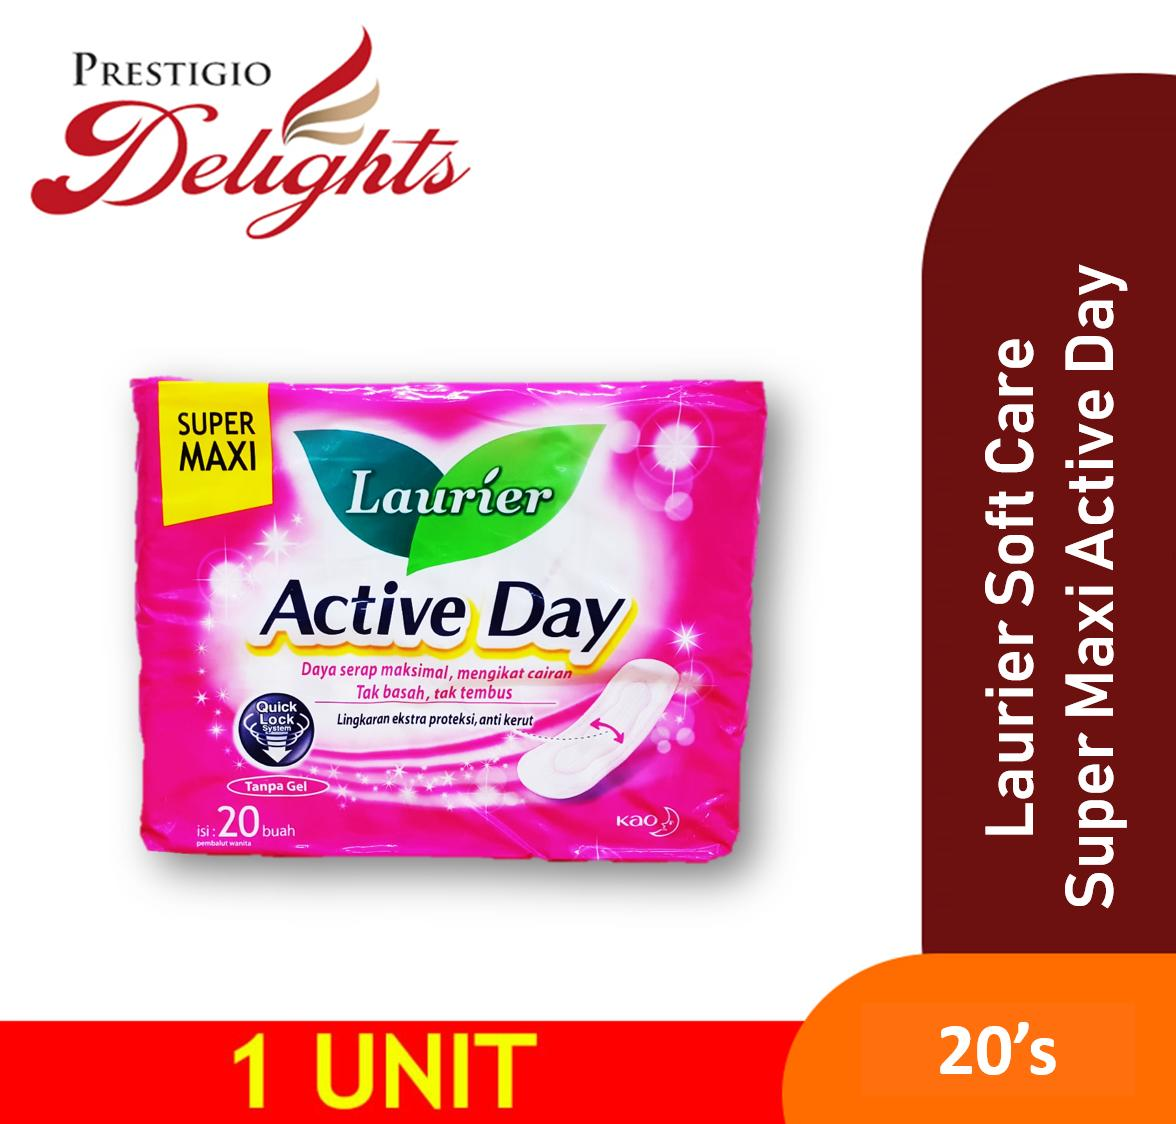 Laurier Soft Care Super Maxi Active Day 20s By Prestigio Delights.